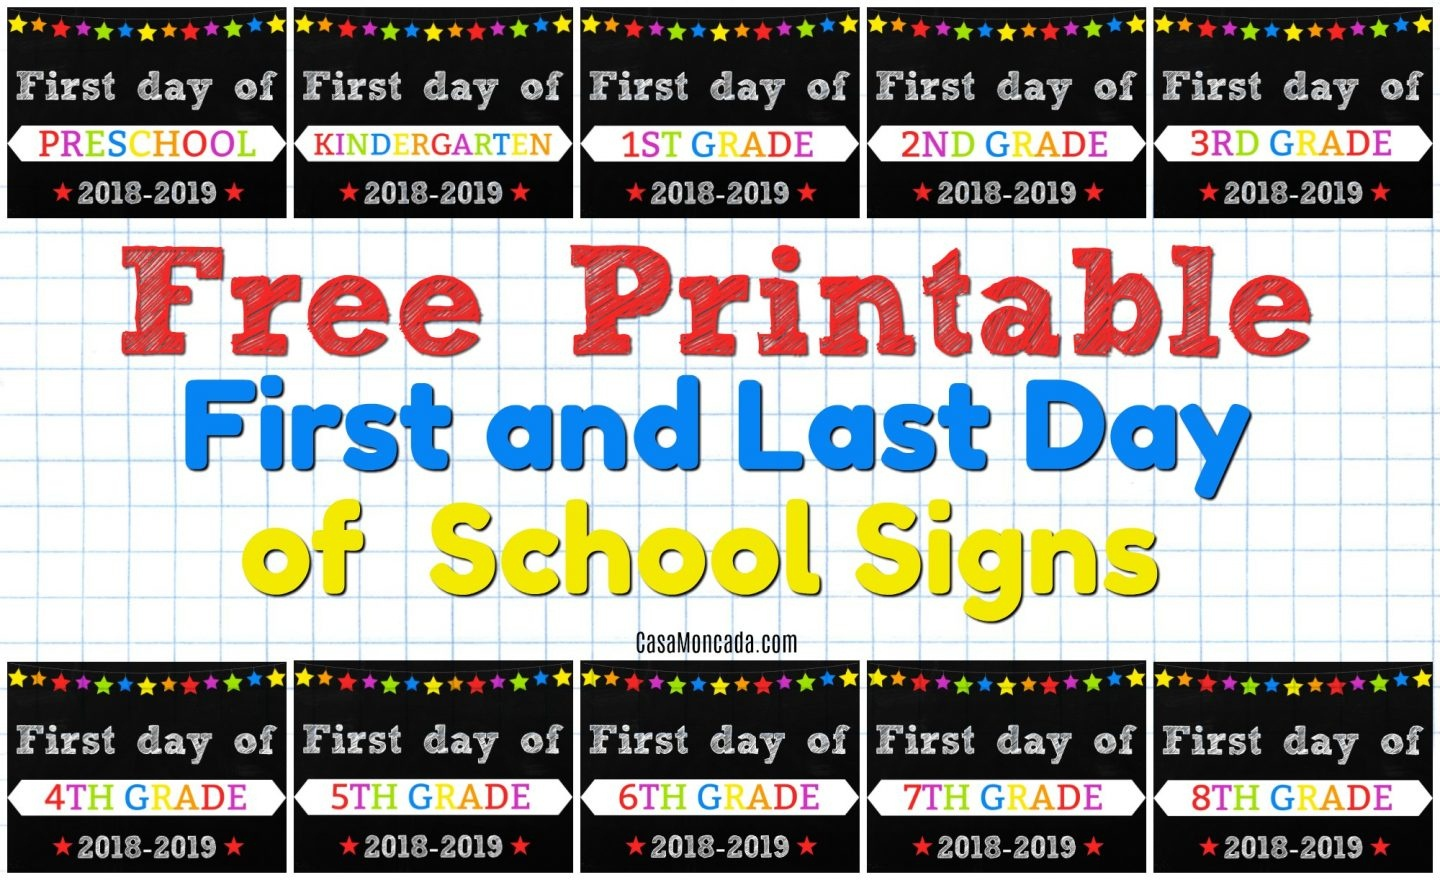 Free Printable First And Last Day Of School Signs - Casa Moncada - Free Printable First Day Of School Signs